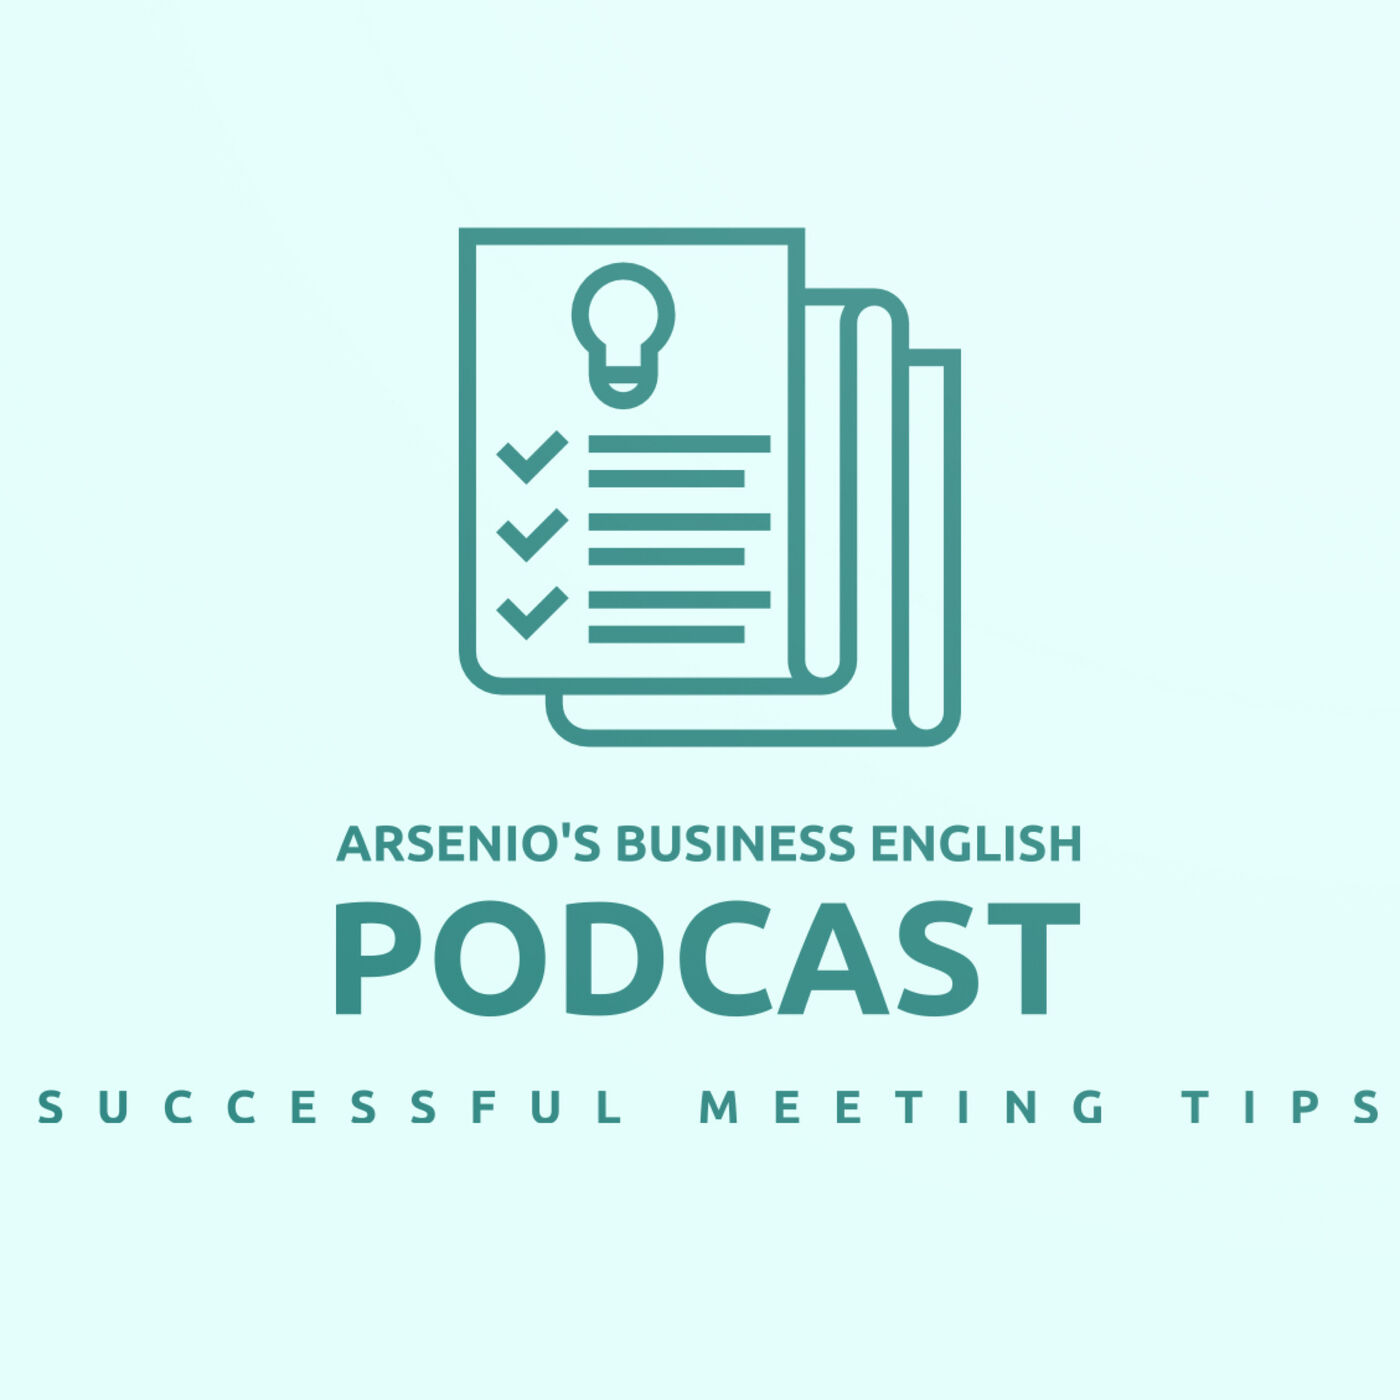 Arsenio's Business English Podcast | Season 6: Episode 20 | Tips for Running a Successful Meeting